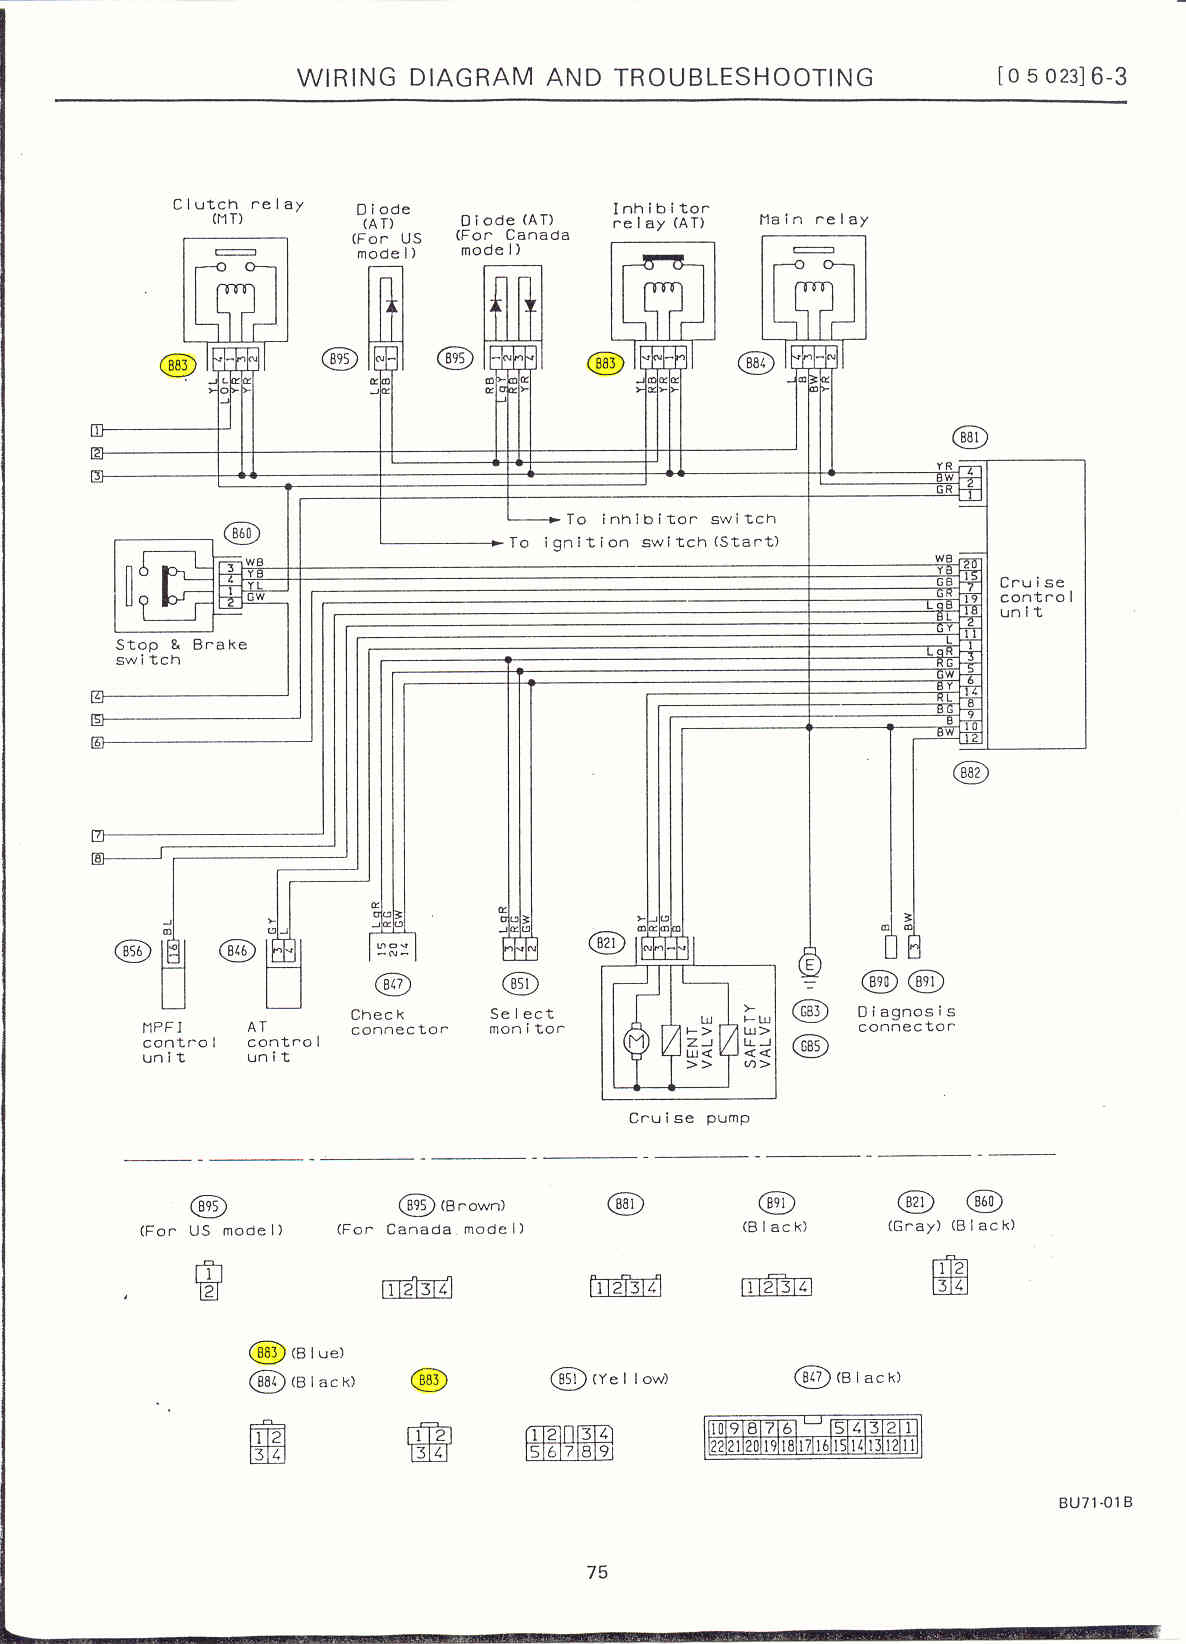 1998 subaru legacy radio wiring diagram 1992 subaru legacy heater wiring schematic surrealmirage - subaru legacy swap electrical info & notes